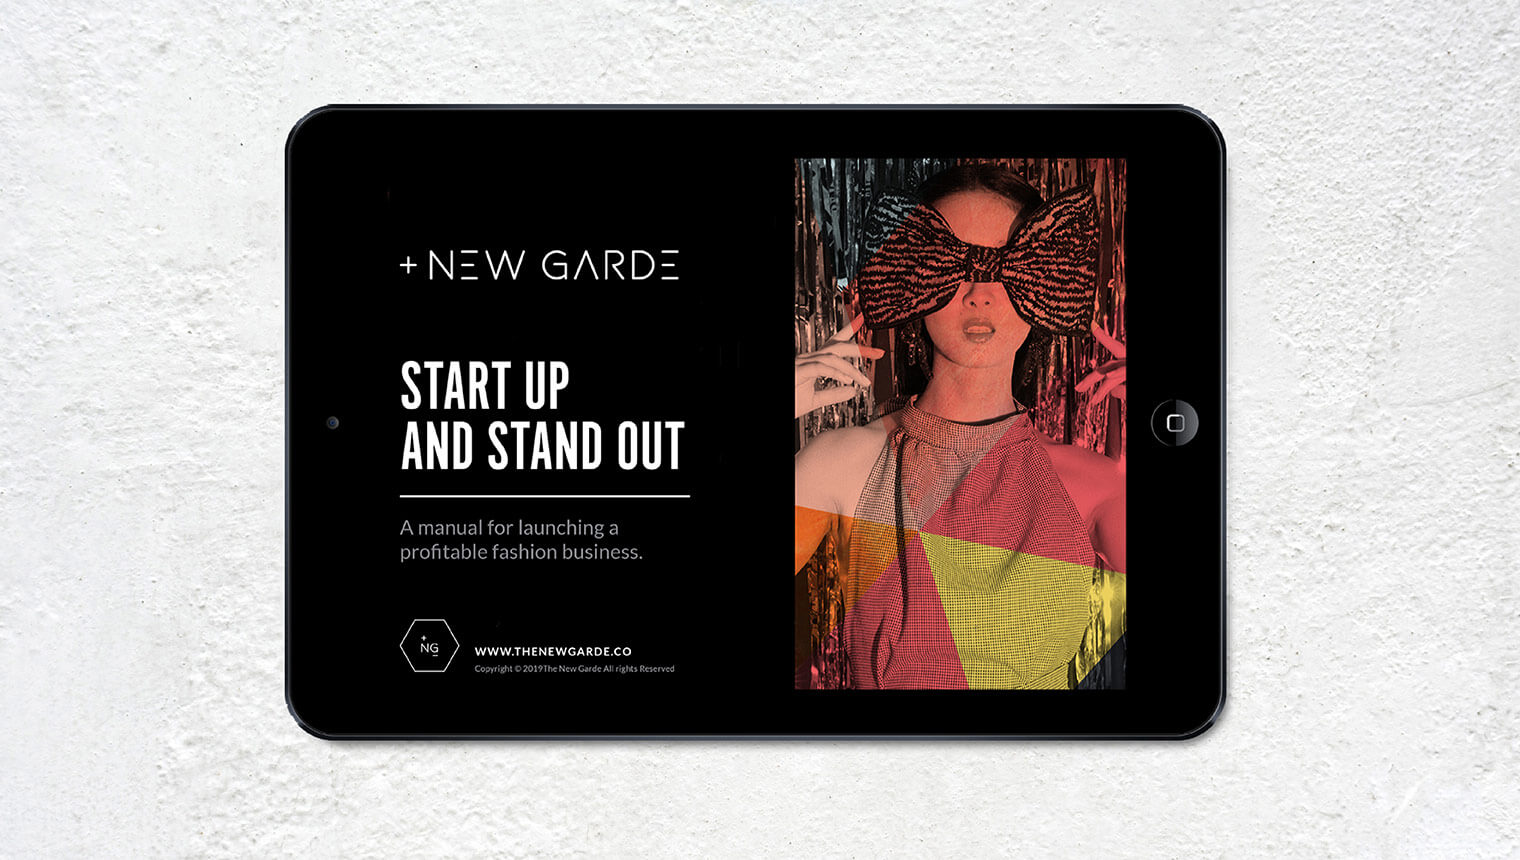 Ipad view of start up fashion ebook workbook for The New Garde